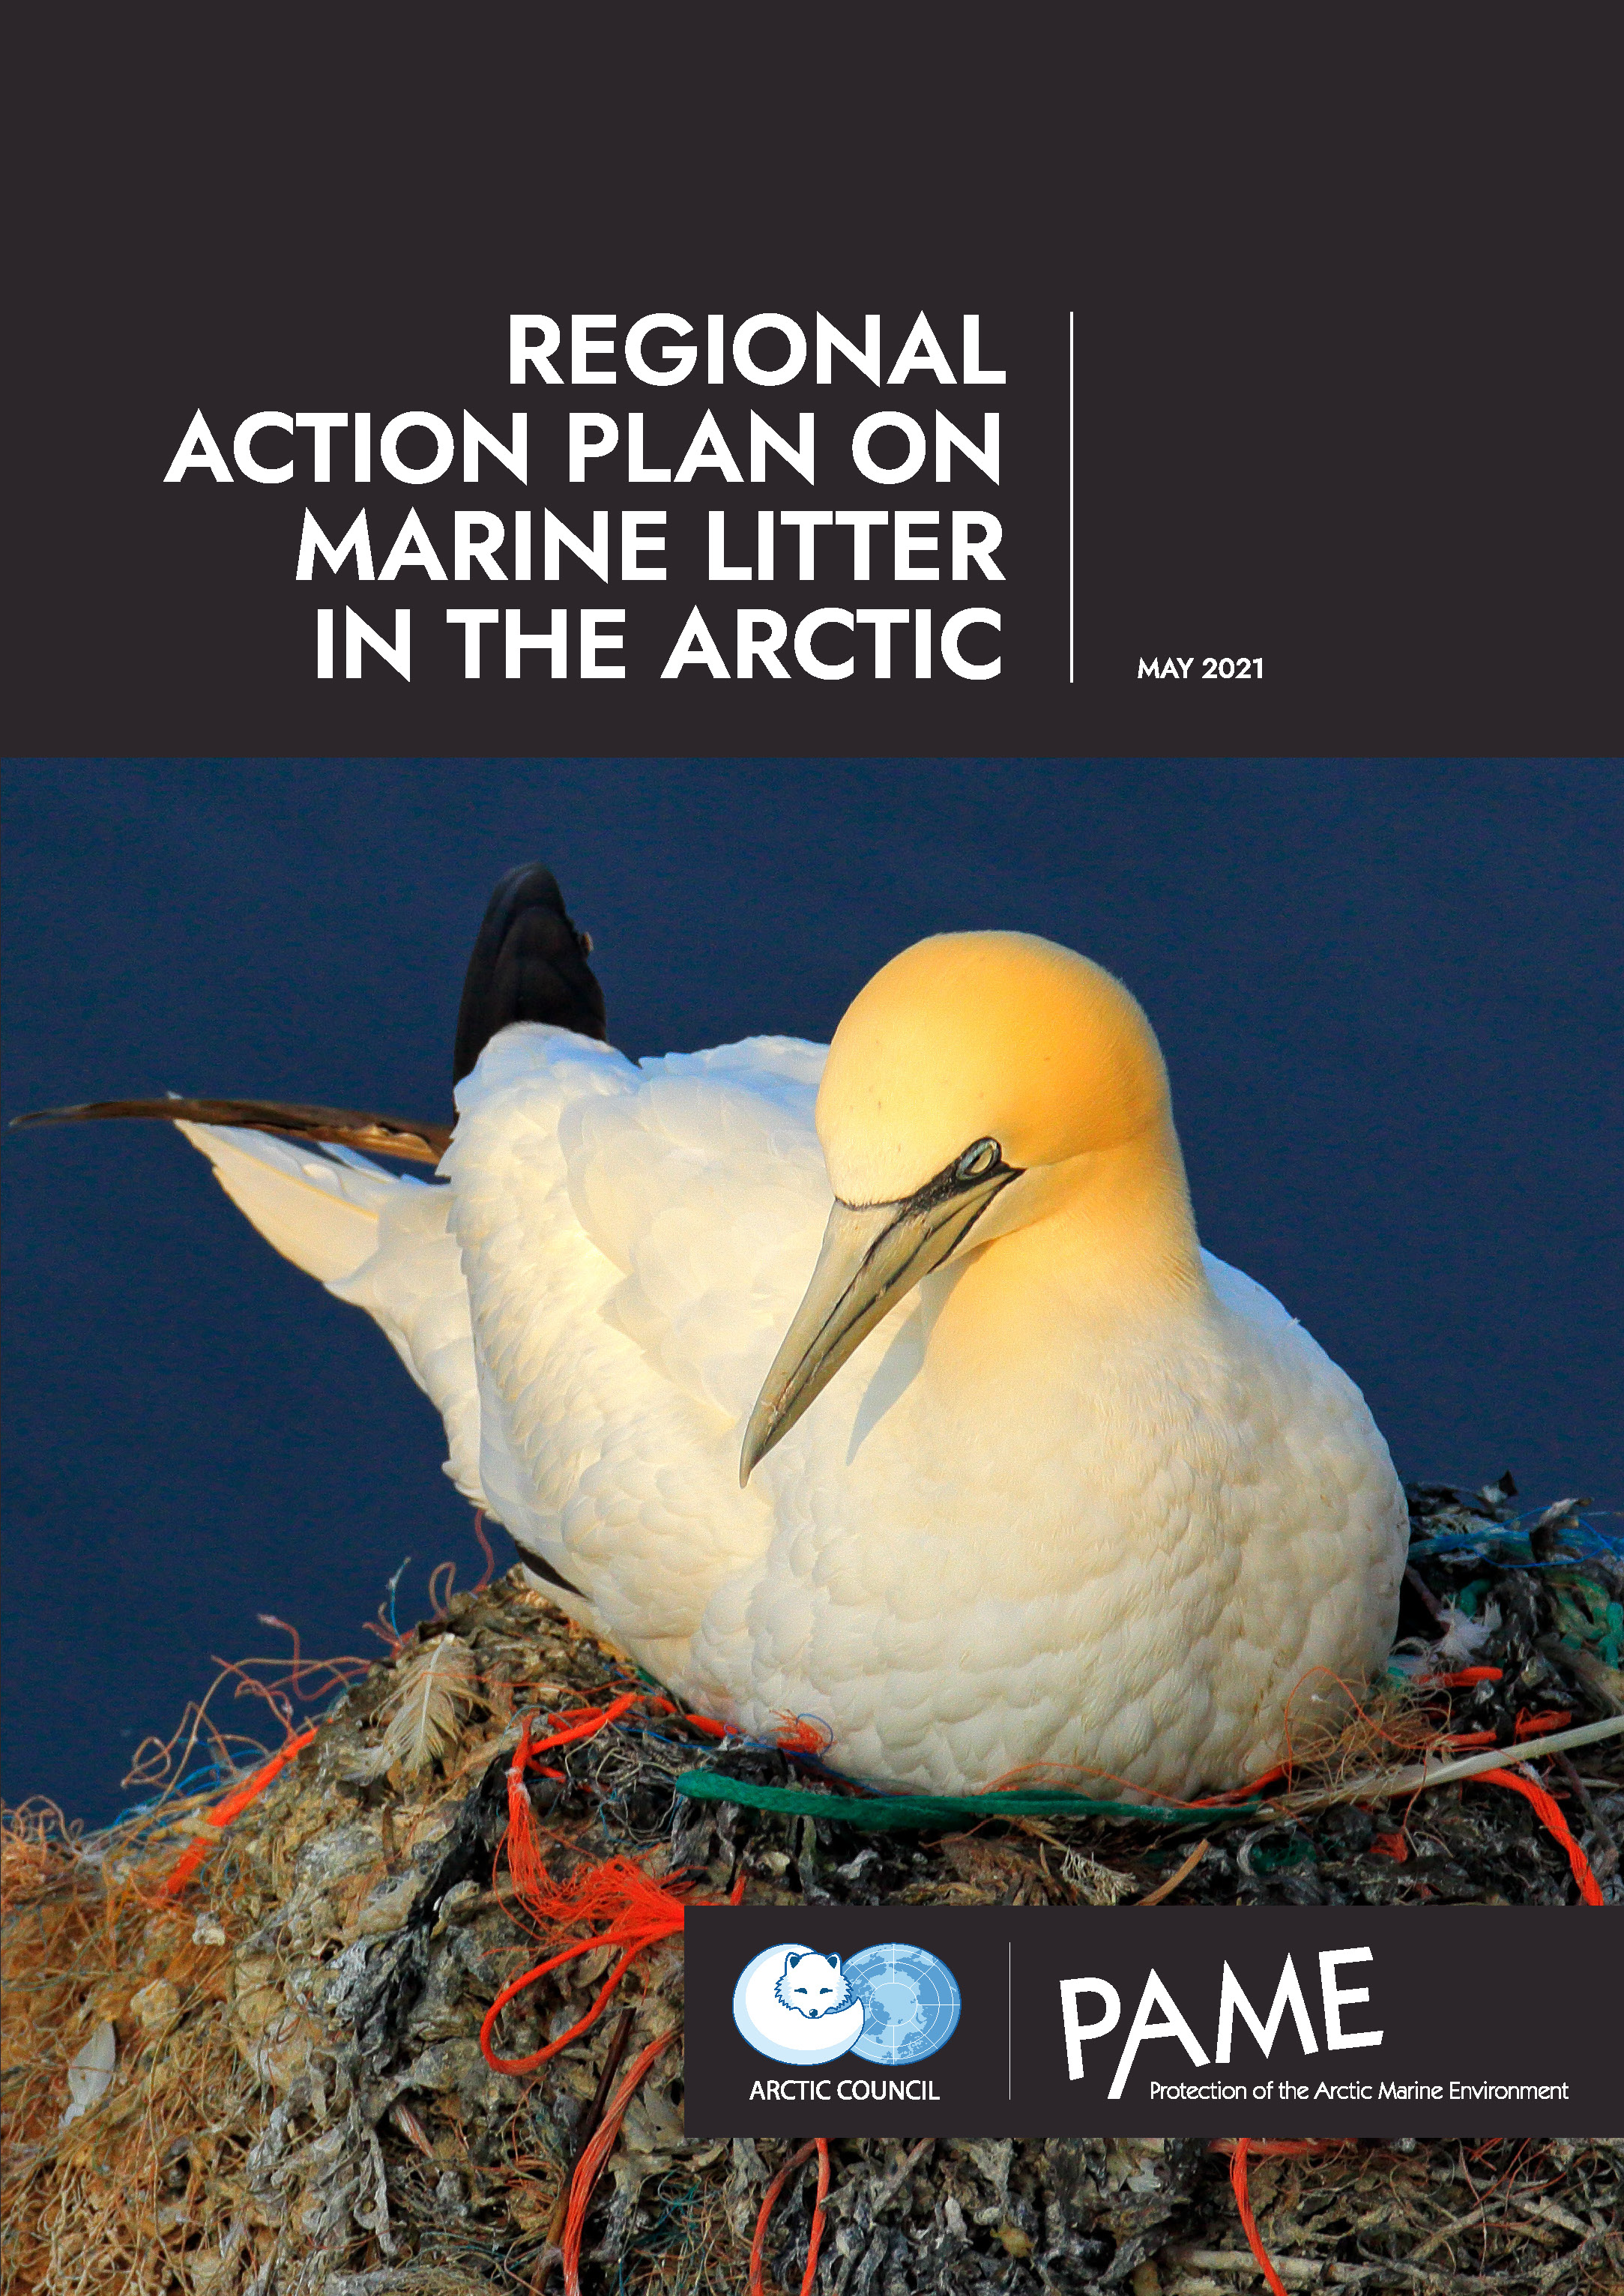 Regional Action Plan on Marine Litter in the Arctic